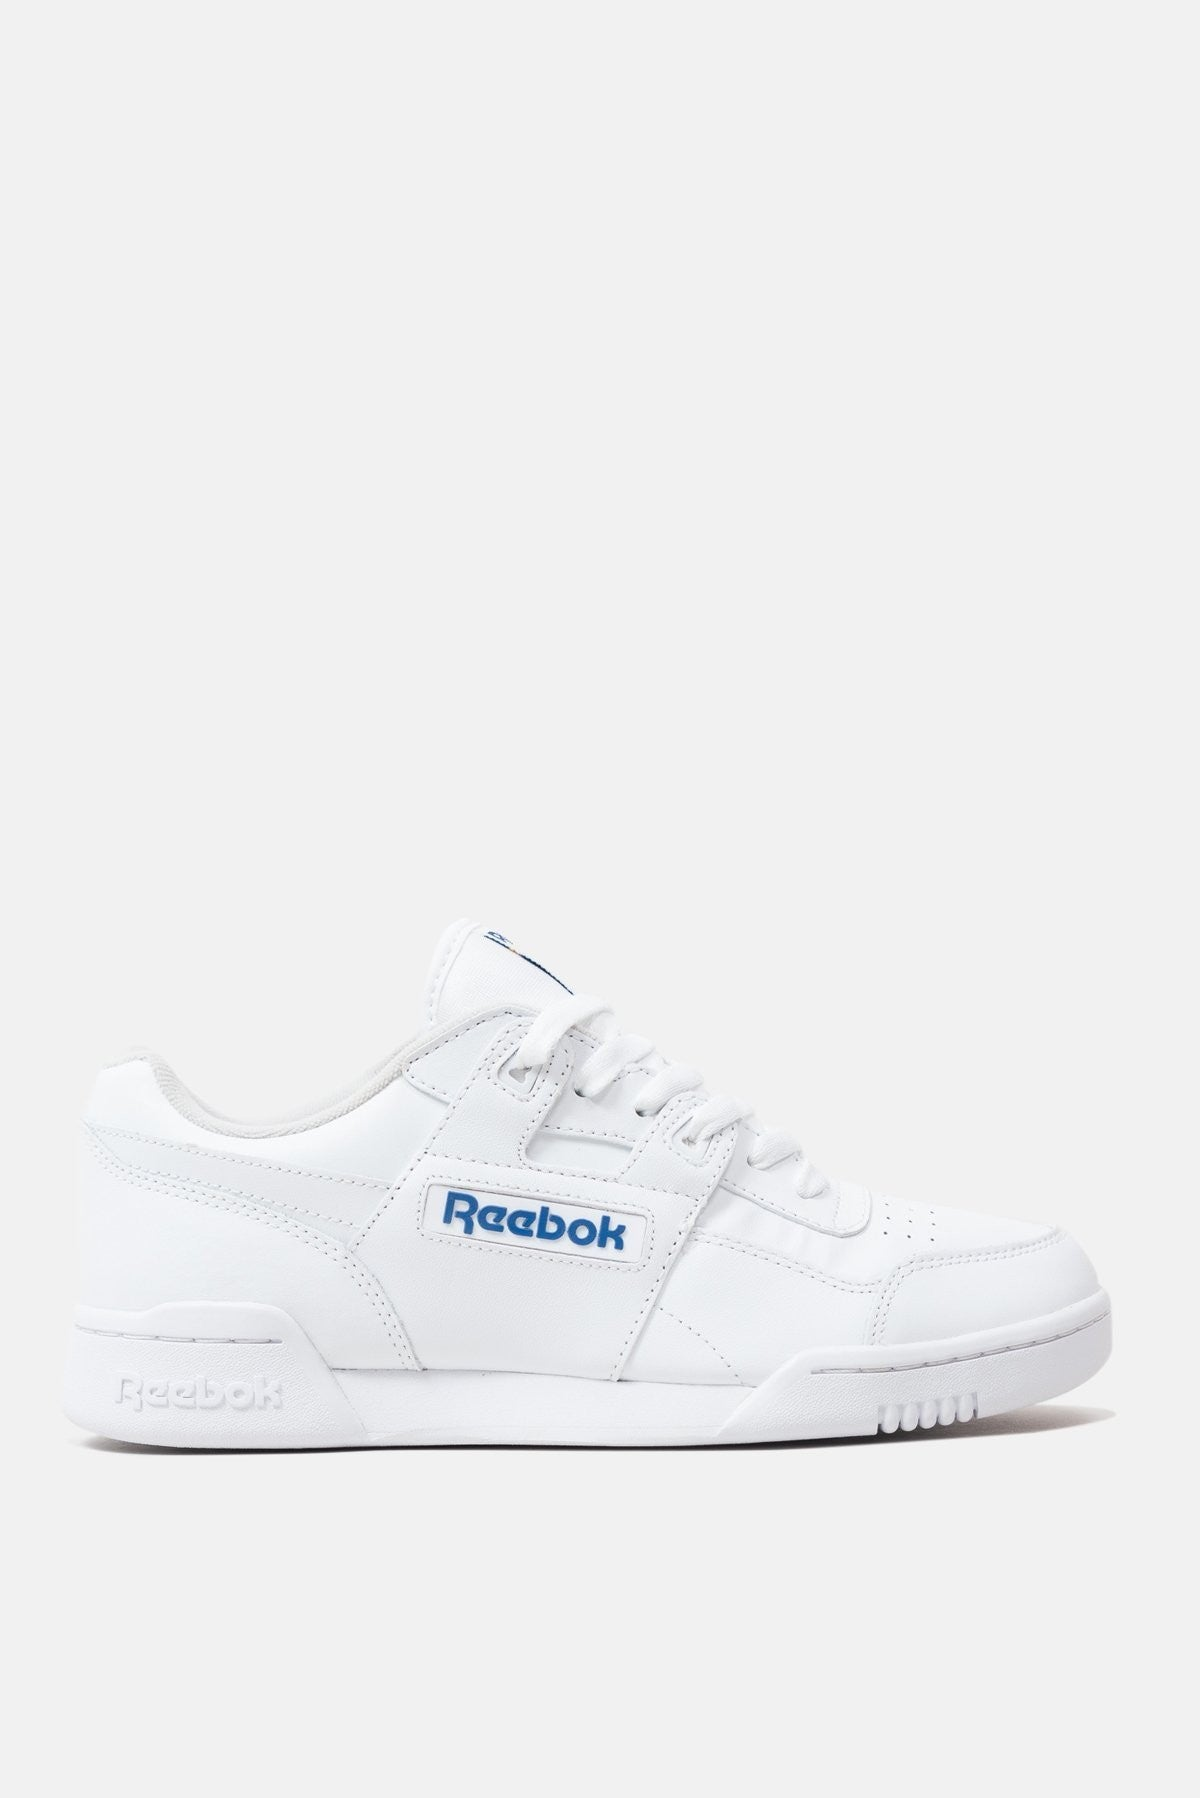 Reebok Classics Workout Plus Shoes available from Priory d178a8a42